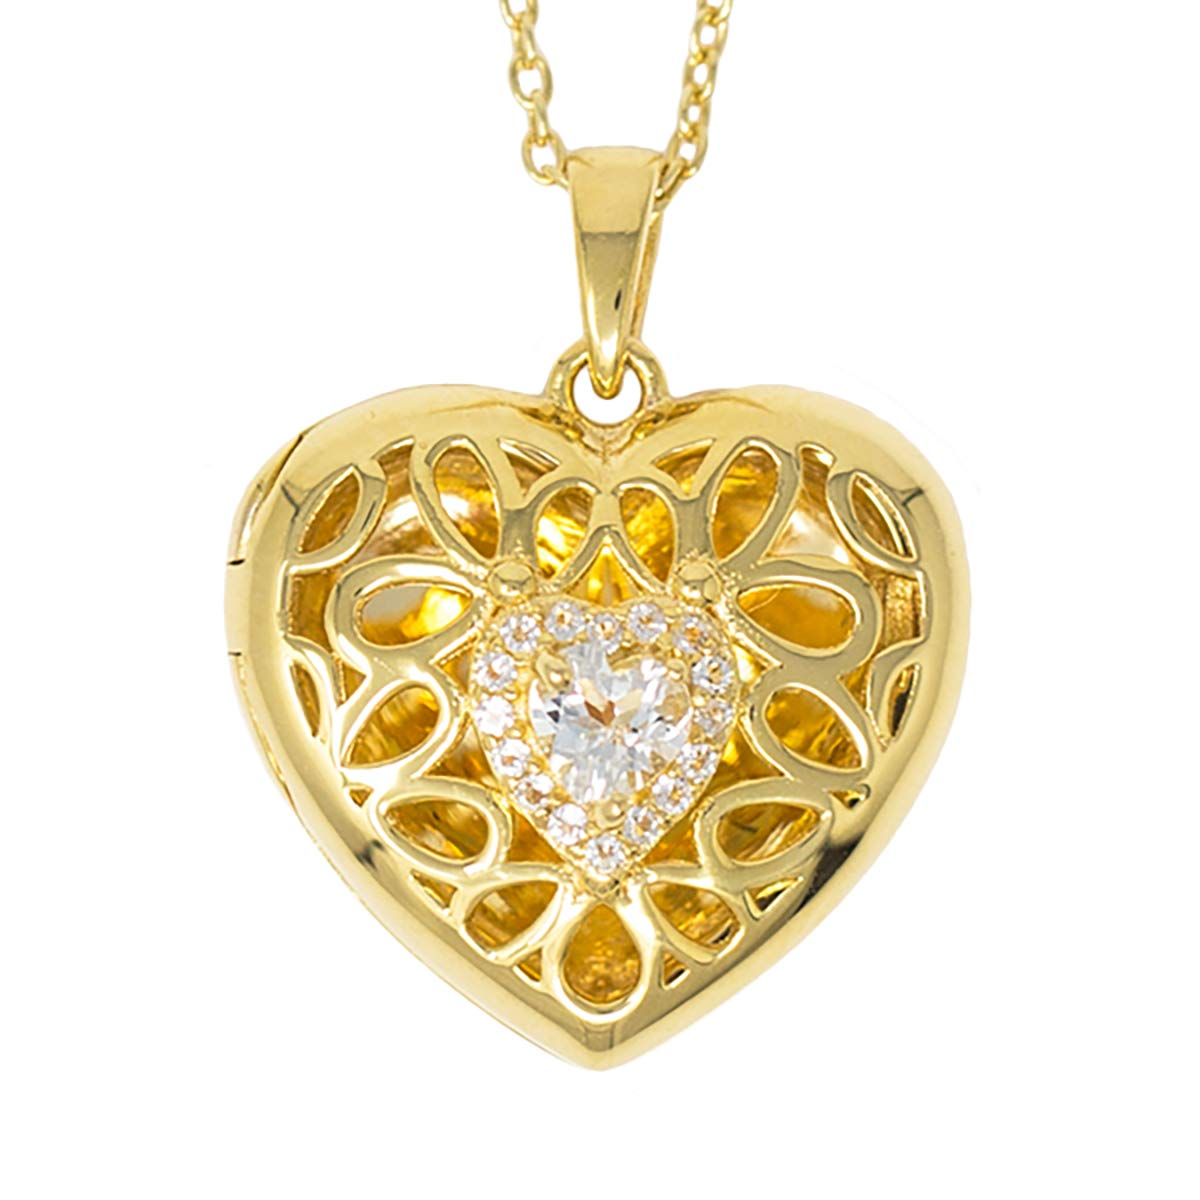 With You Lockets-Fine Yellow Gold-Custom Photo Heart Locket Necklace-That Holds Pictures for Women-The Katharine